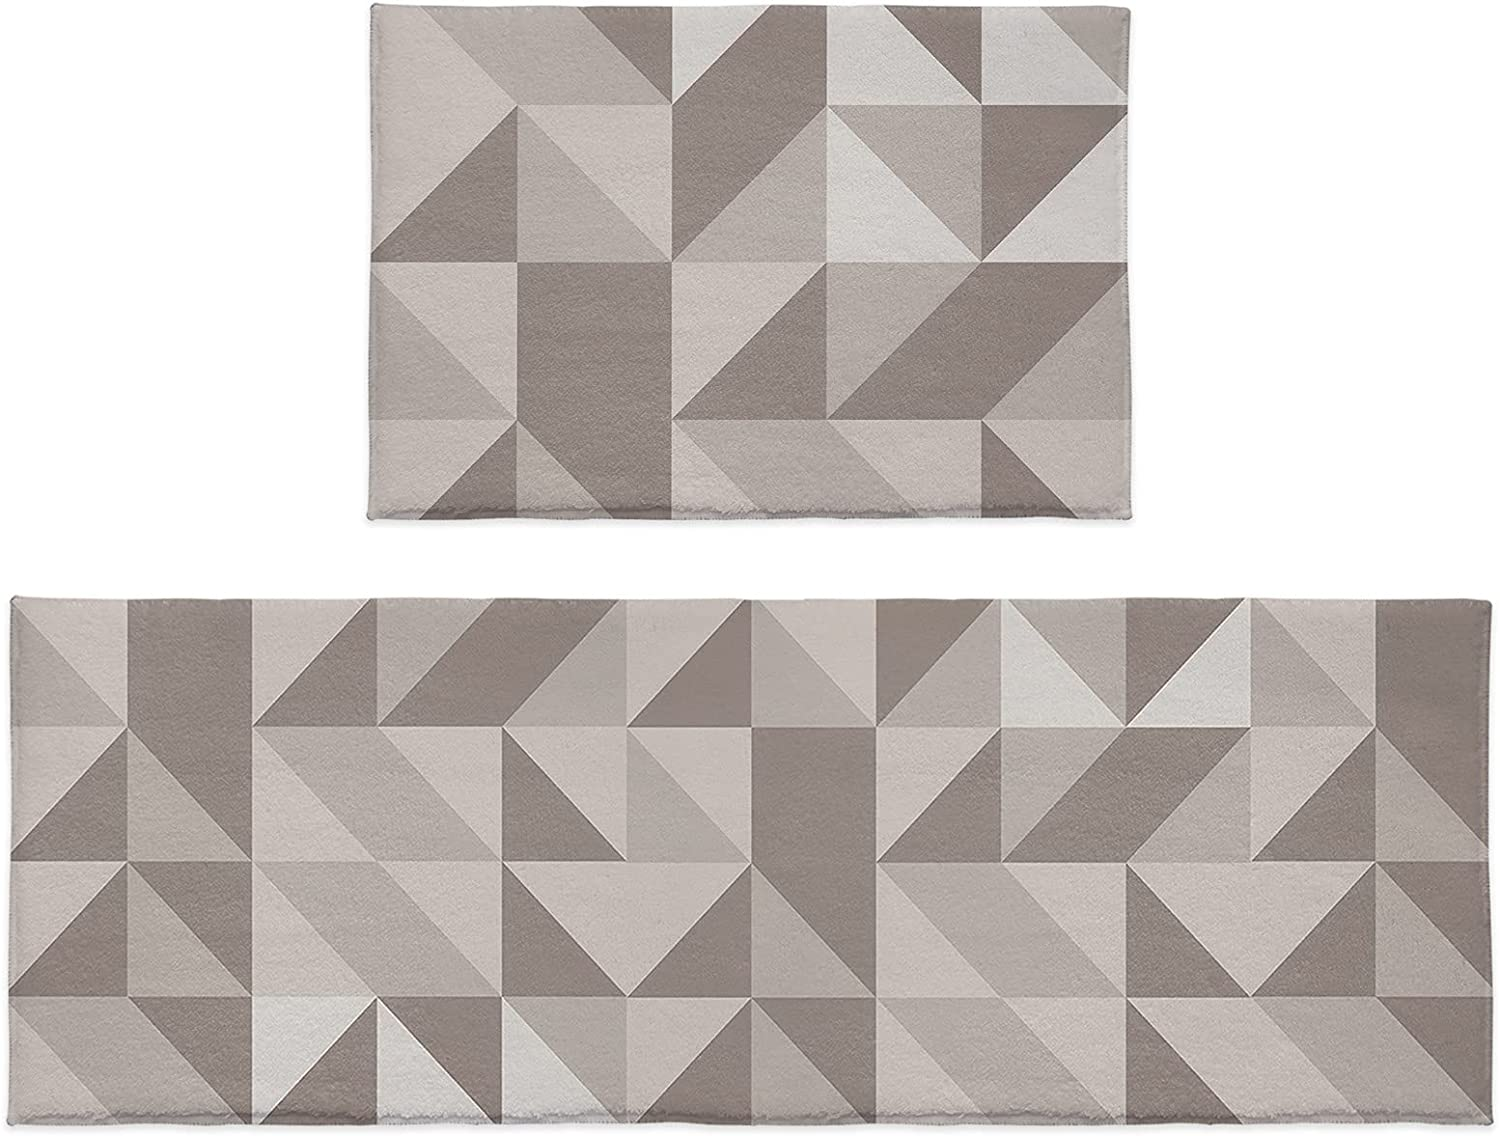 Cloud Dream Bargain sale Home New mail order Kitchen Rug Sets Triangle 2 Piece Geome Pattern